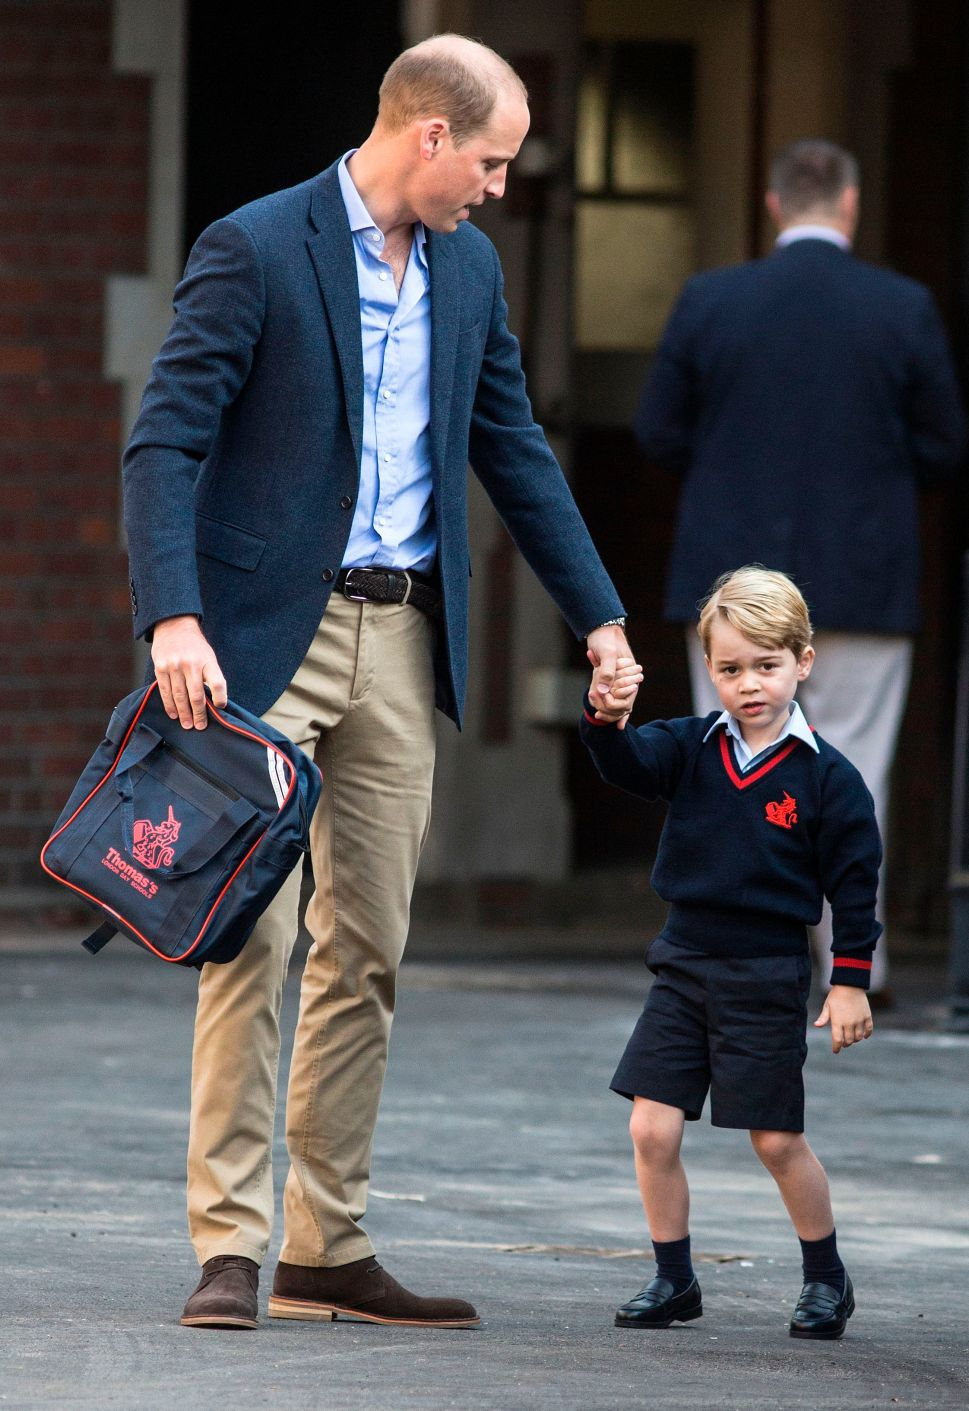 Prince Charles Thinks Prince George's School Will Be Character Building